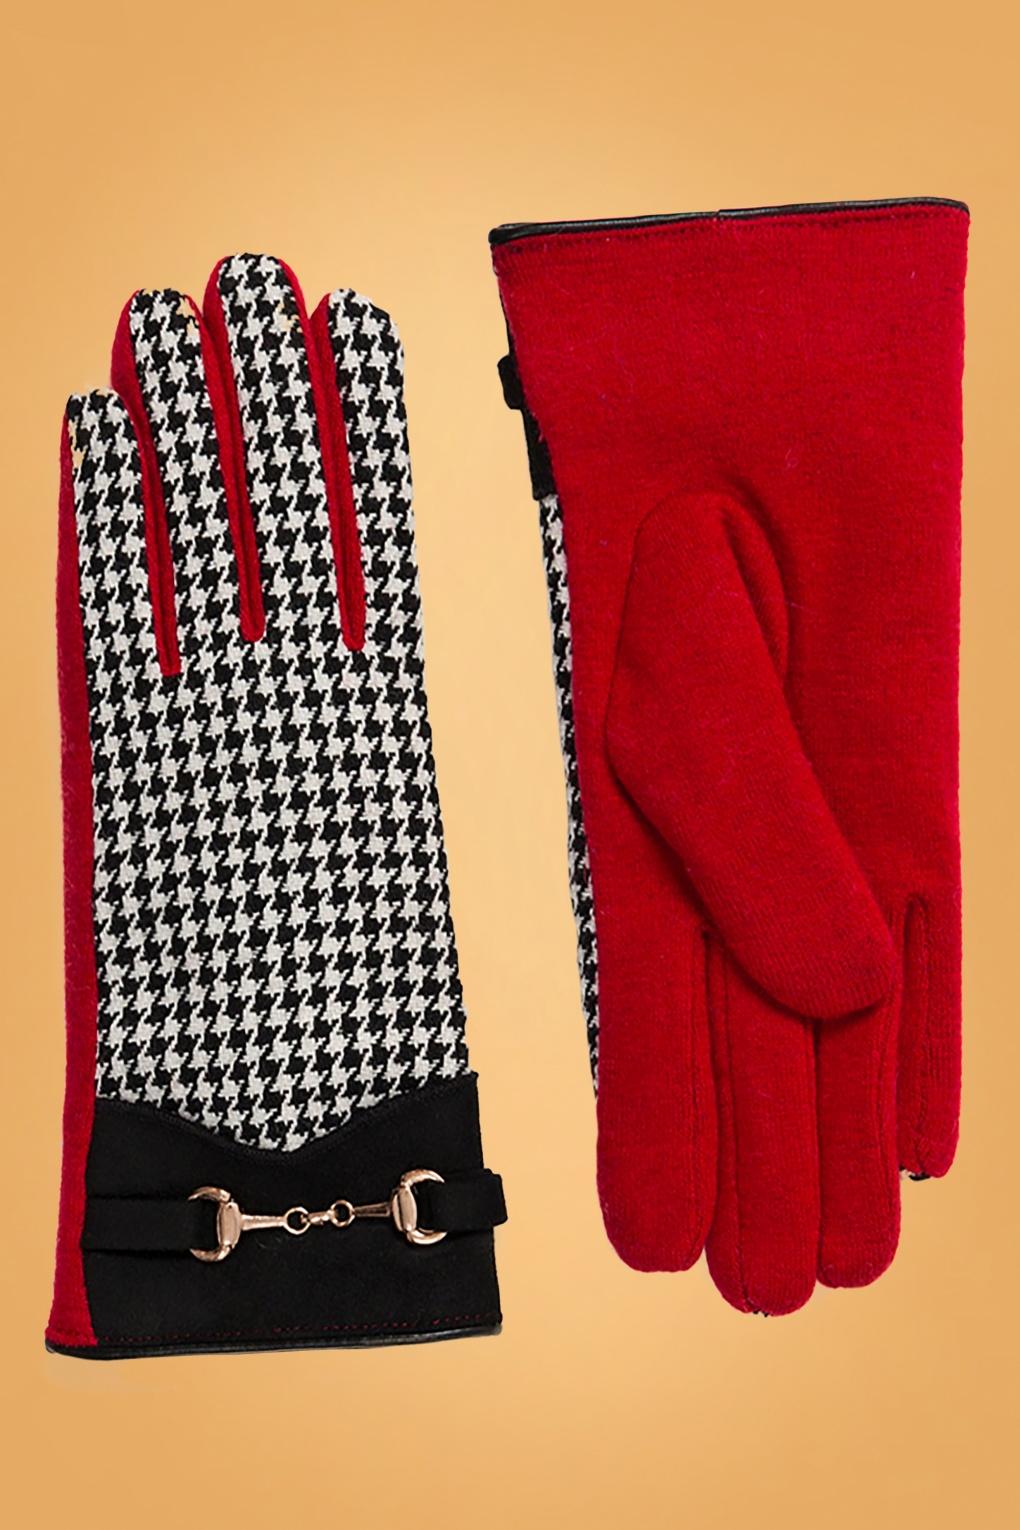 1960s Style Dresses, Clothing, Shoes UK 60s Latoya Houndstooth Gloves in Black and Red £22.40 AT vintagedancer.com